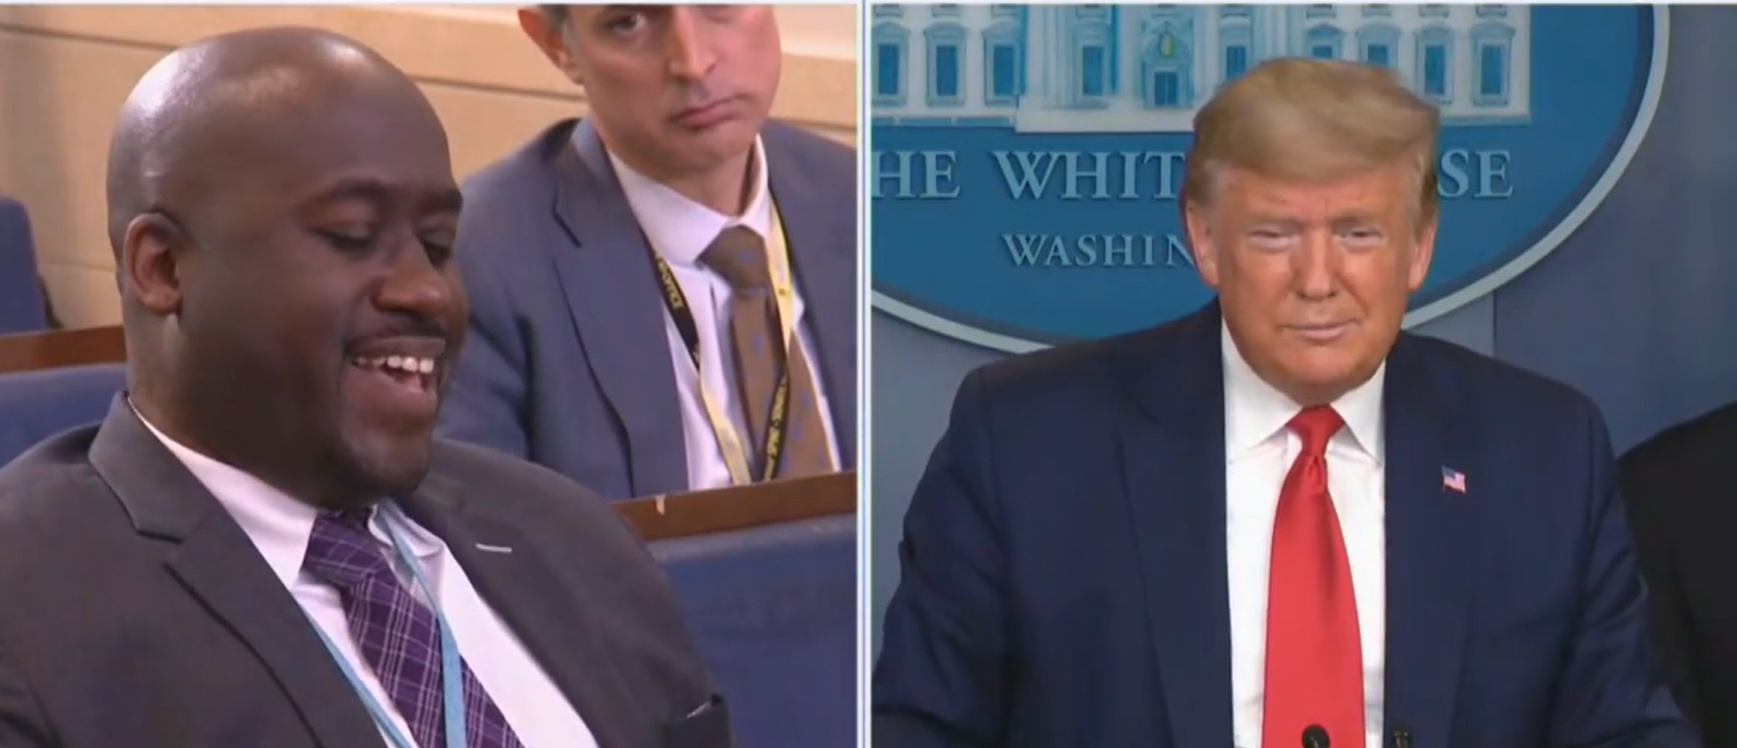 'How's Michael Doing? Good?': Bloomberg Reporter Laughs When Trump Asks About His Boss On Live TV